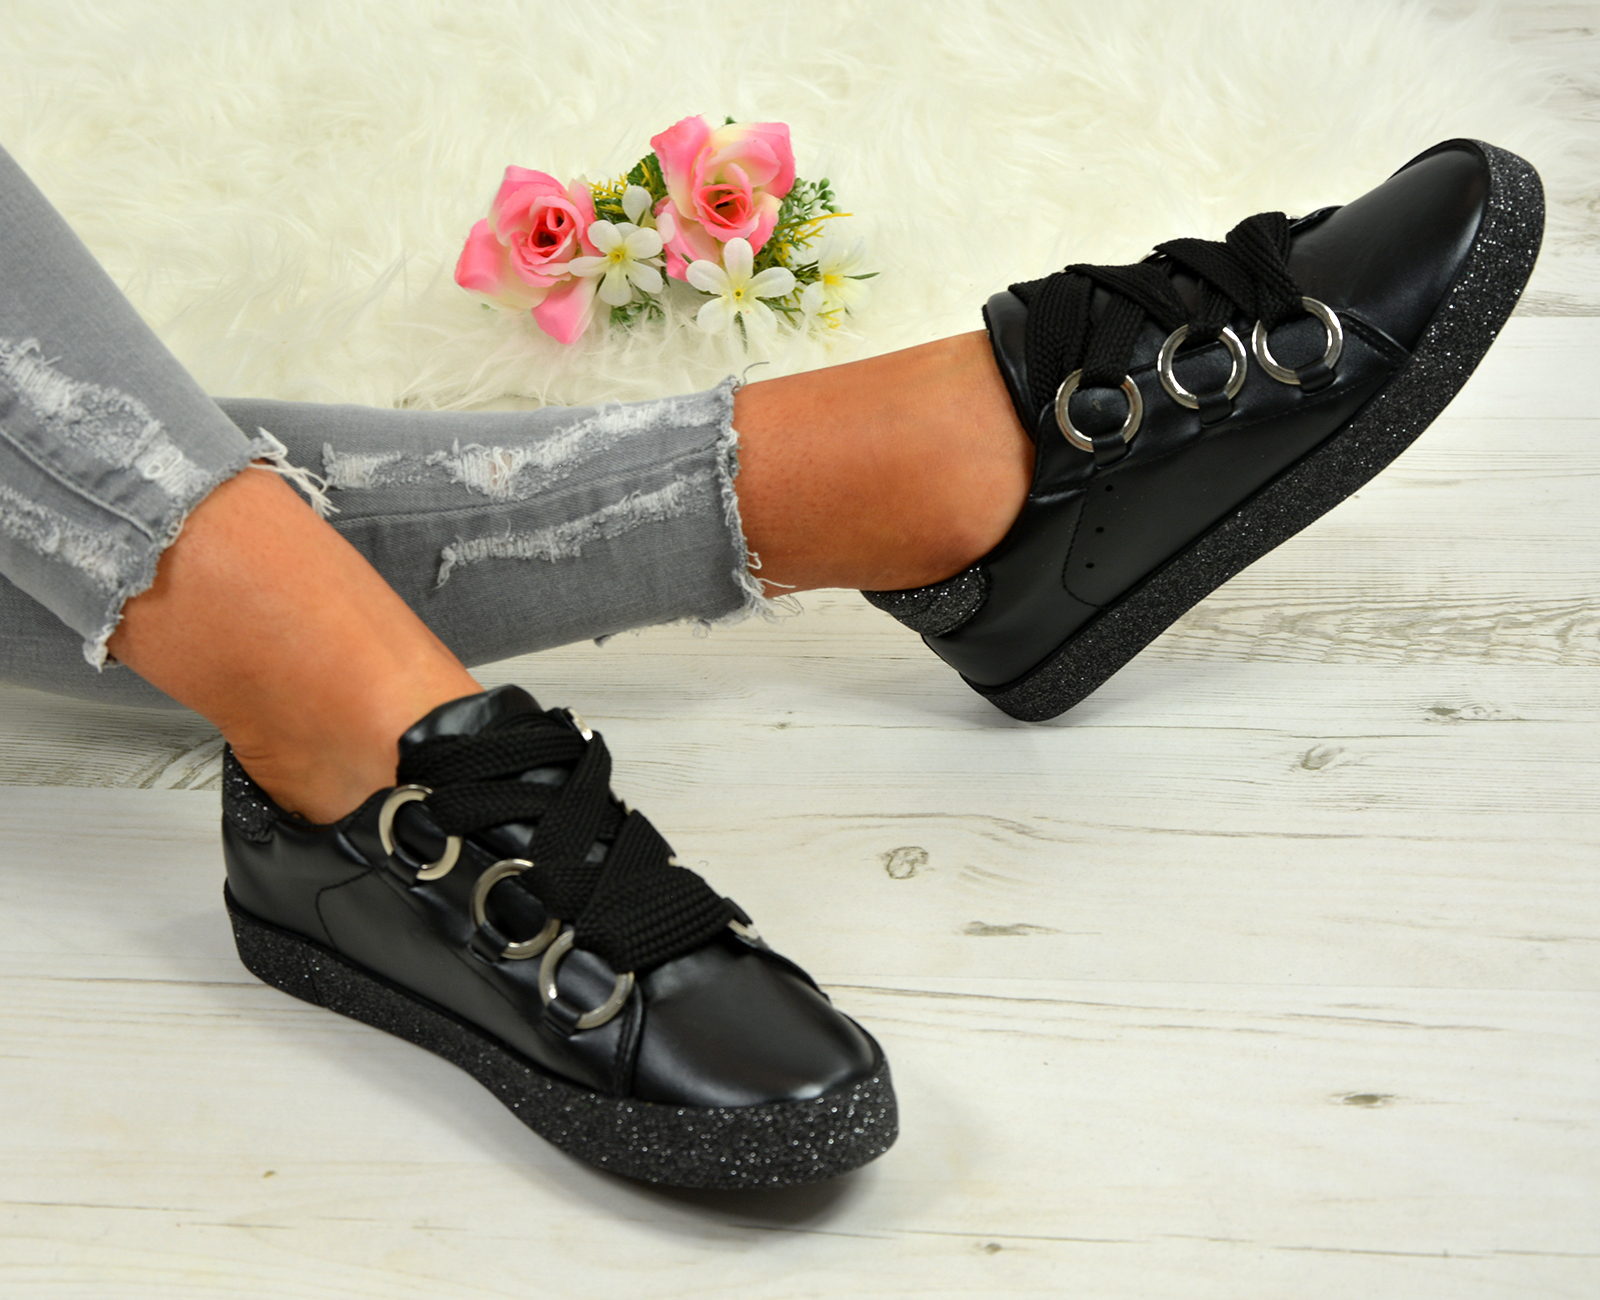 LADIES-WOMENS-GLITTER-SNEAKERS-SPARKLE-TRAINERS-LACE-UP-PLIMSOLL-PUMPS-SHOES thumbnail 8